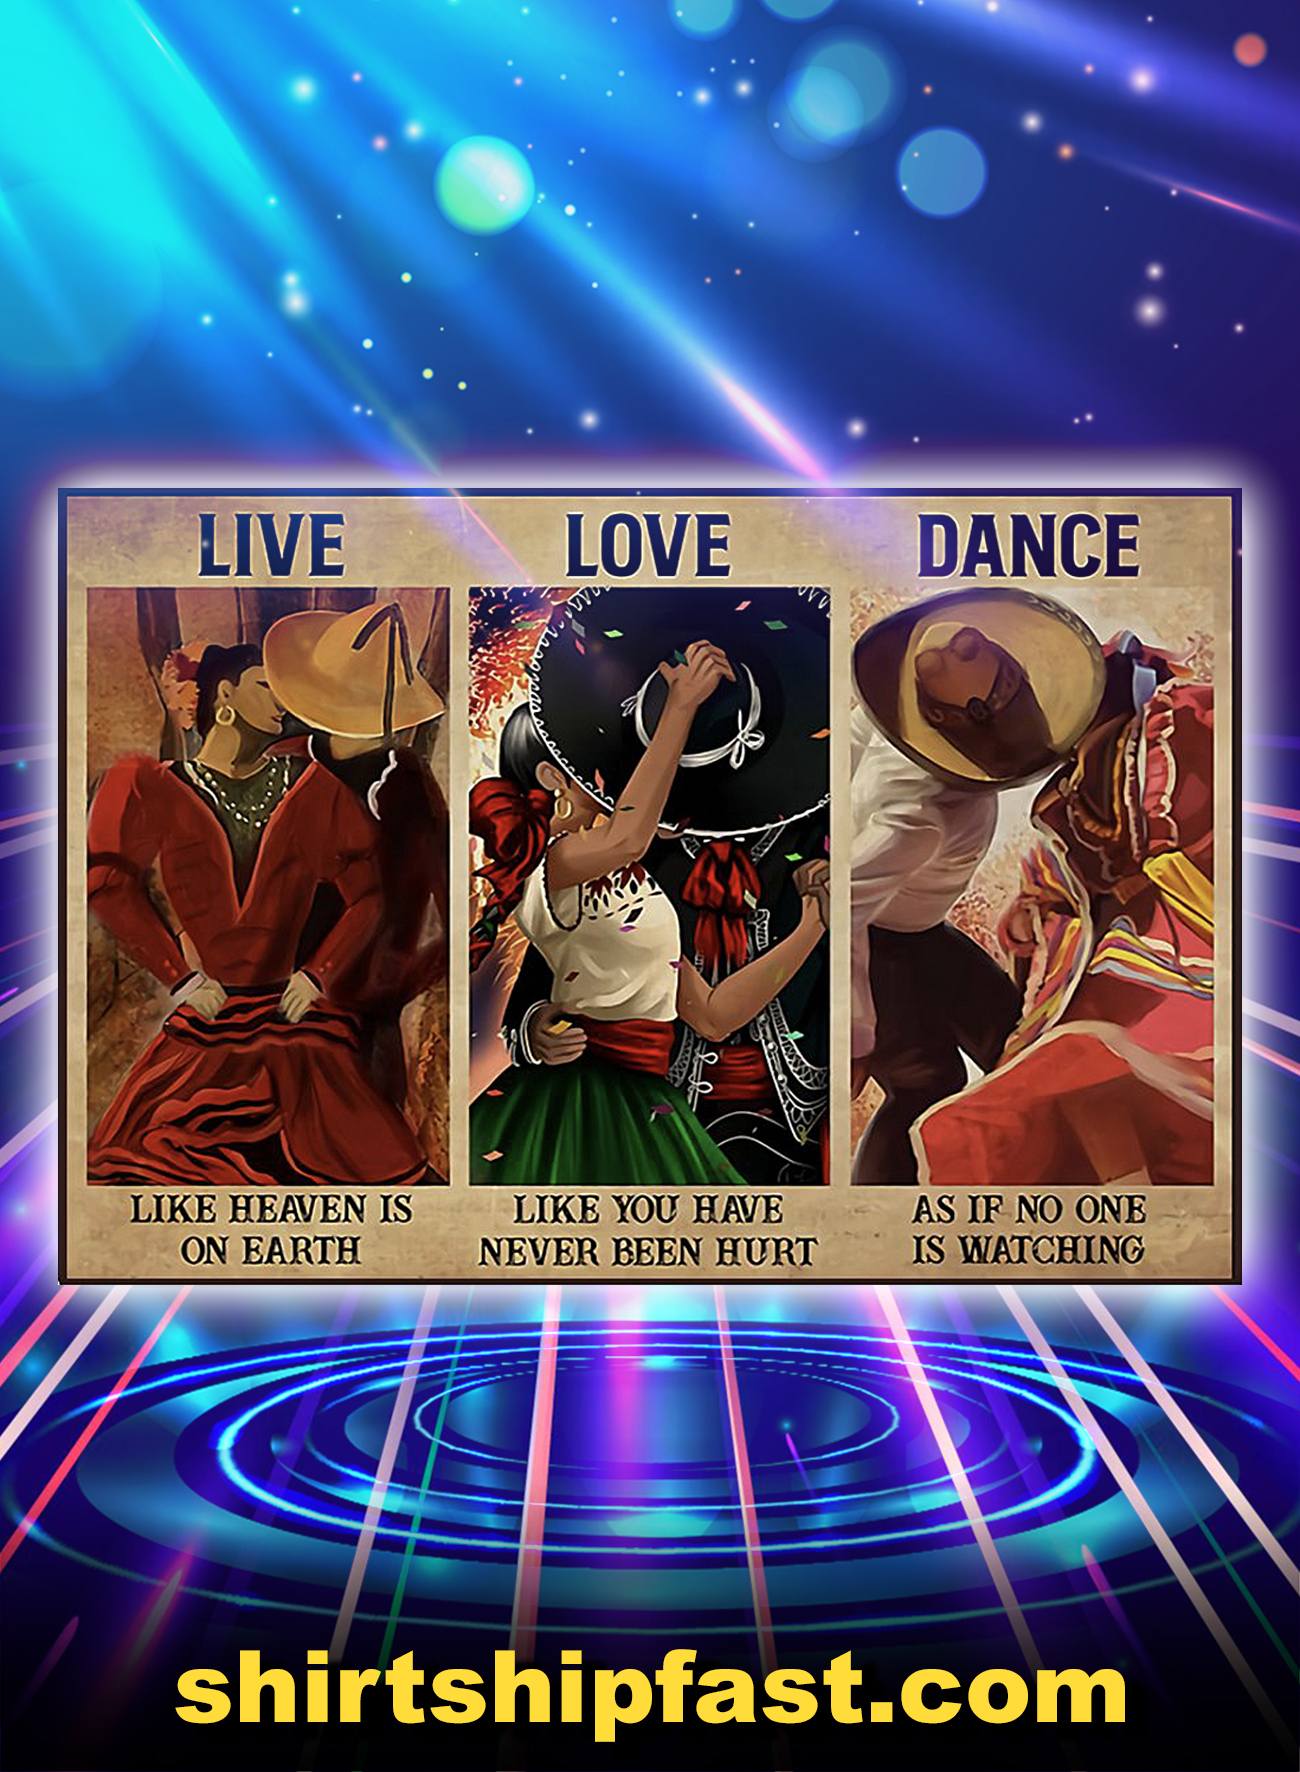 Mexican culture live love dance poster - A4